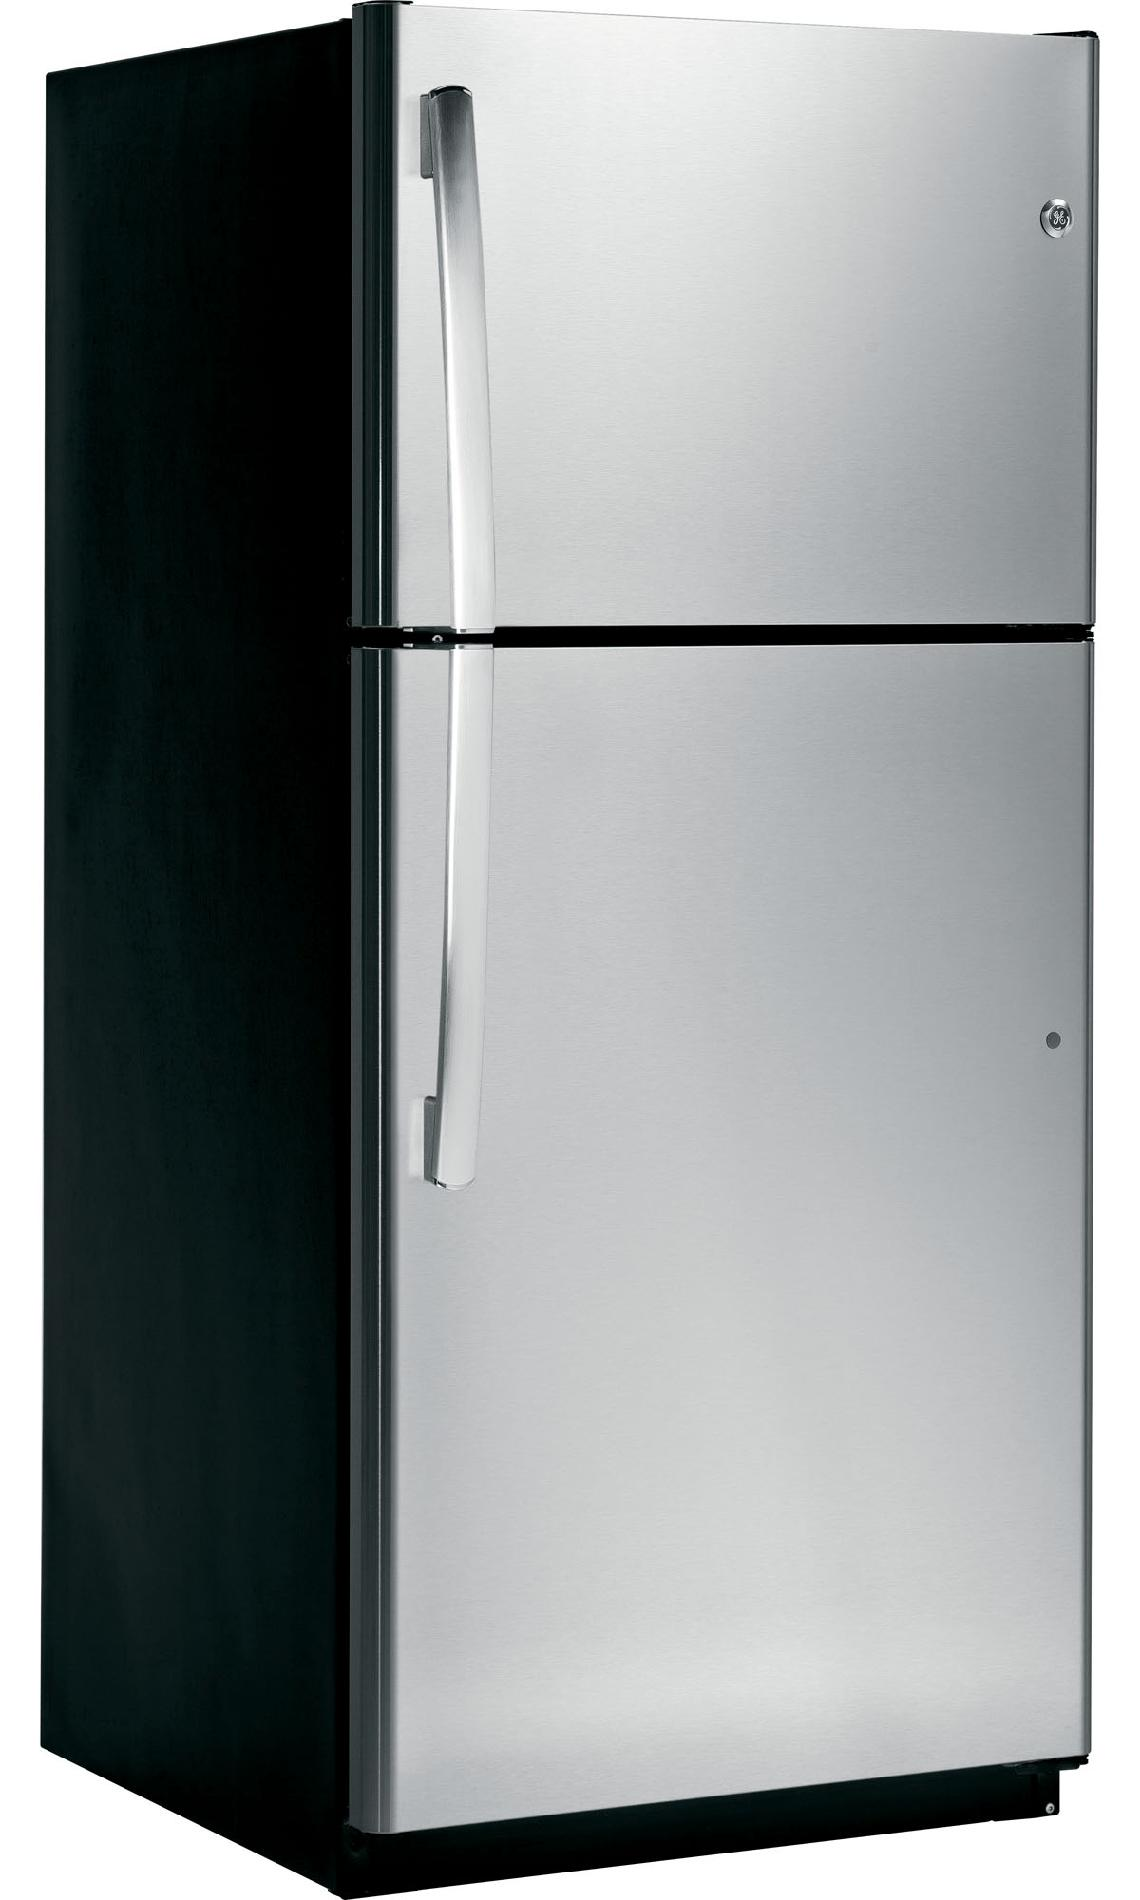 GE 18.0 cu. ft. Top-Freezer Refrigerator  - Stainless Steel